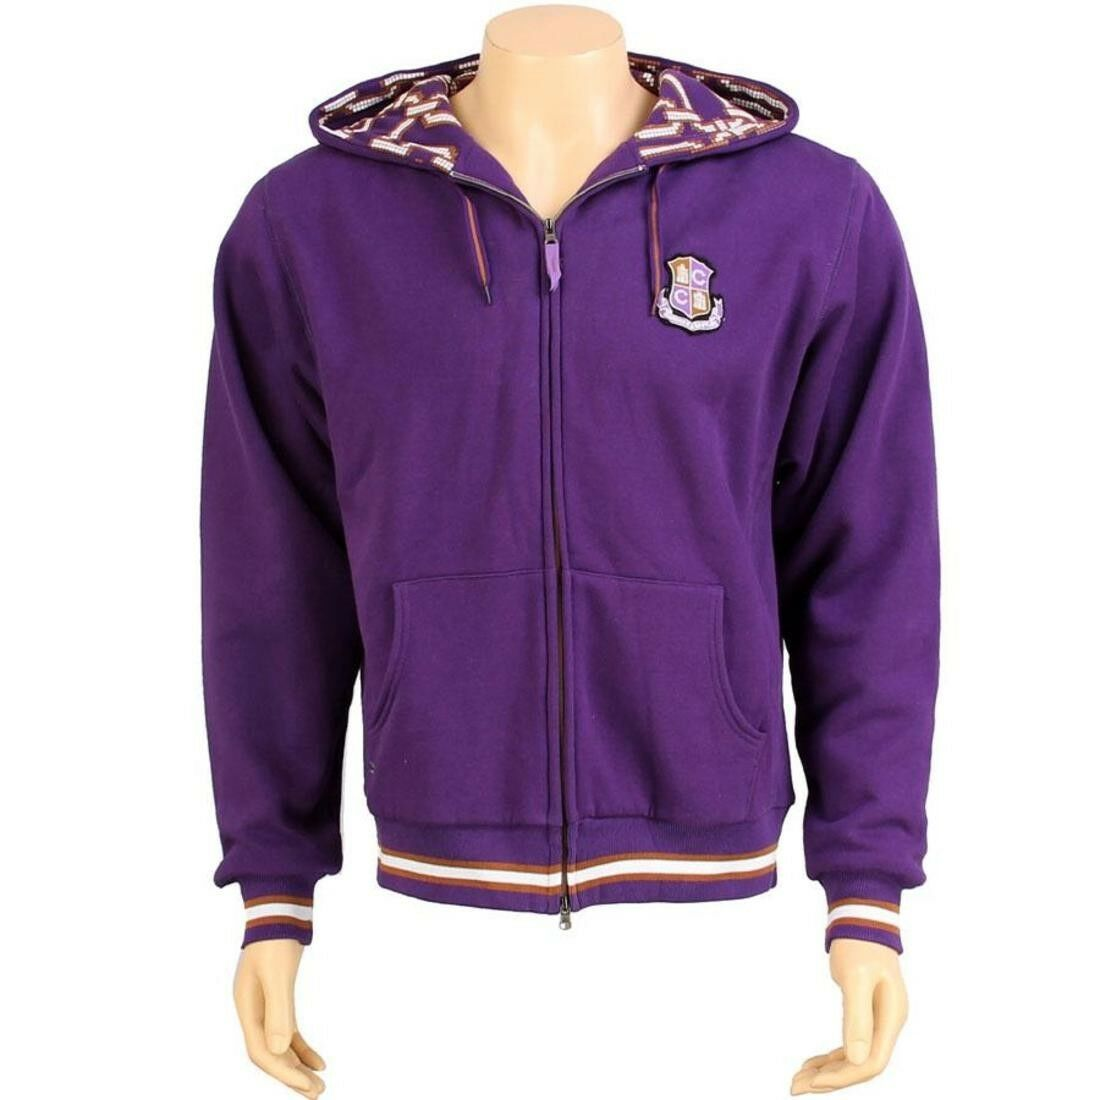 109.99 Crooks and Castles Royale Zip Hoody (lila) CCROYALEZIPHOODPUR